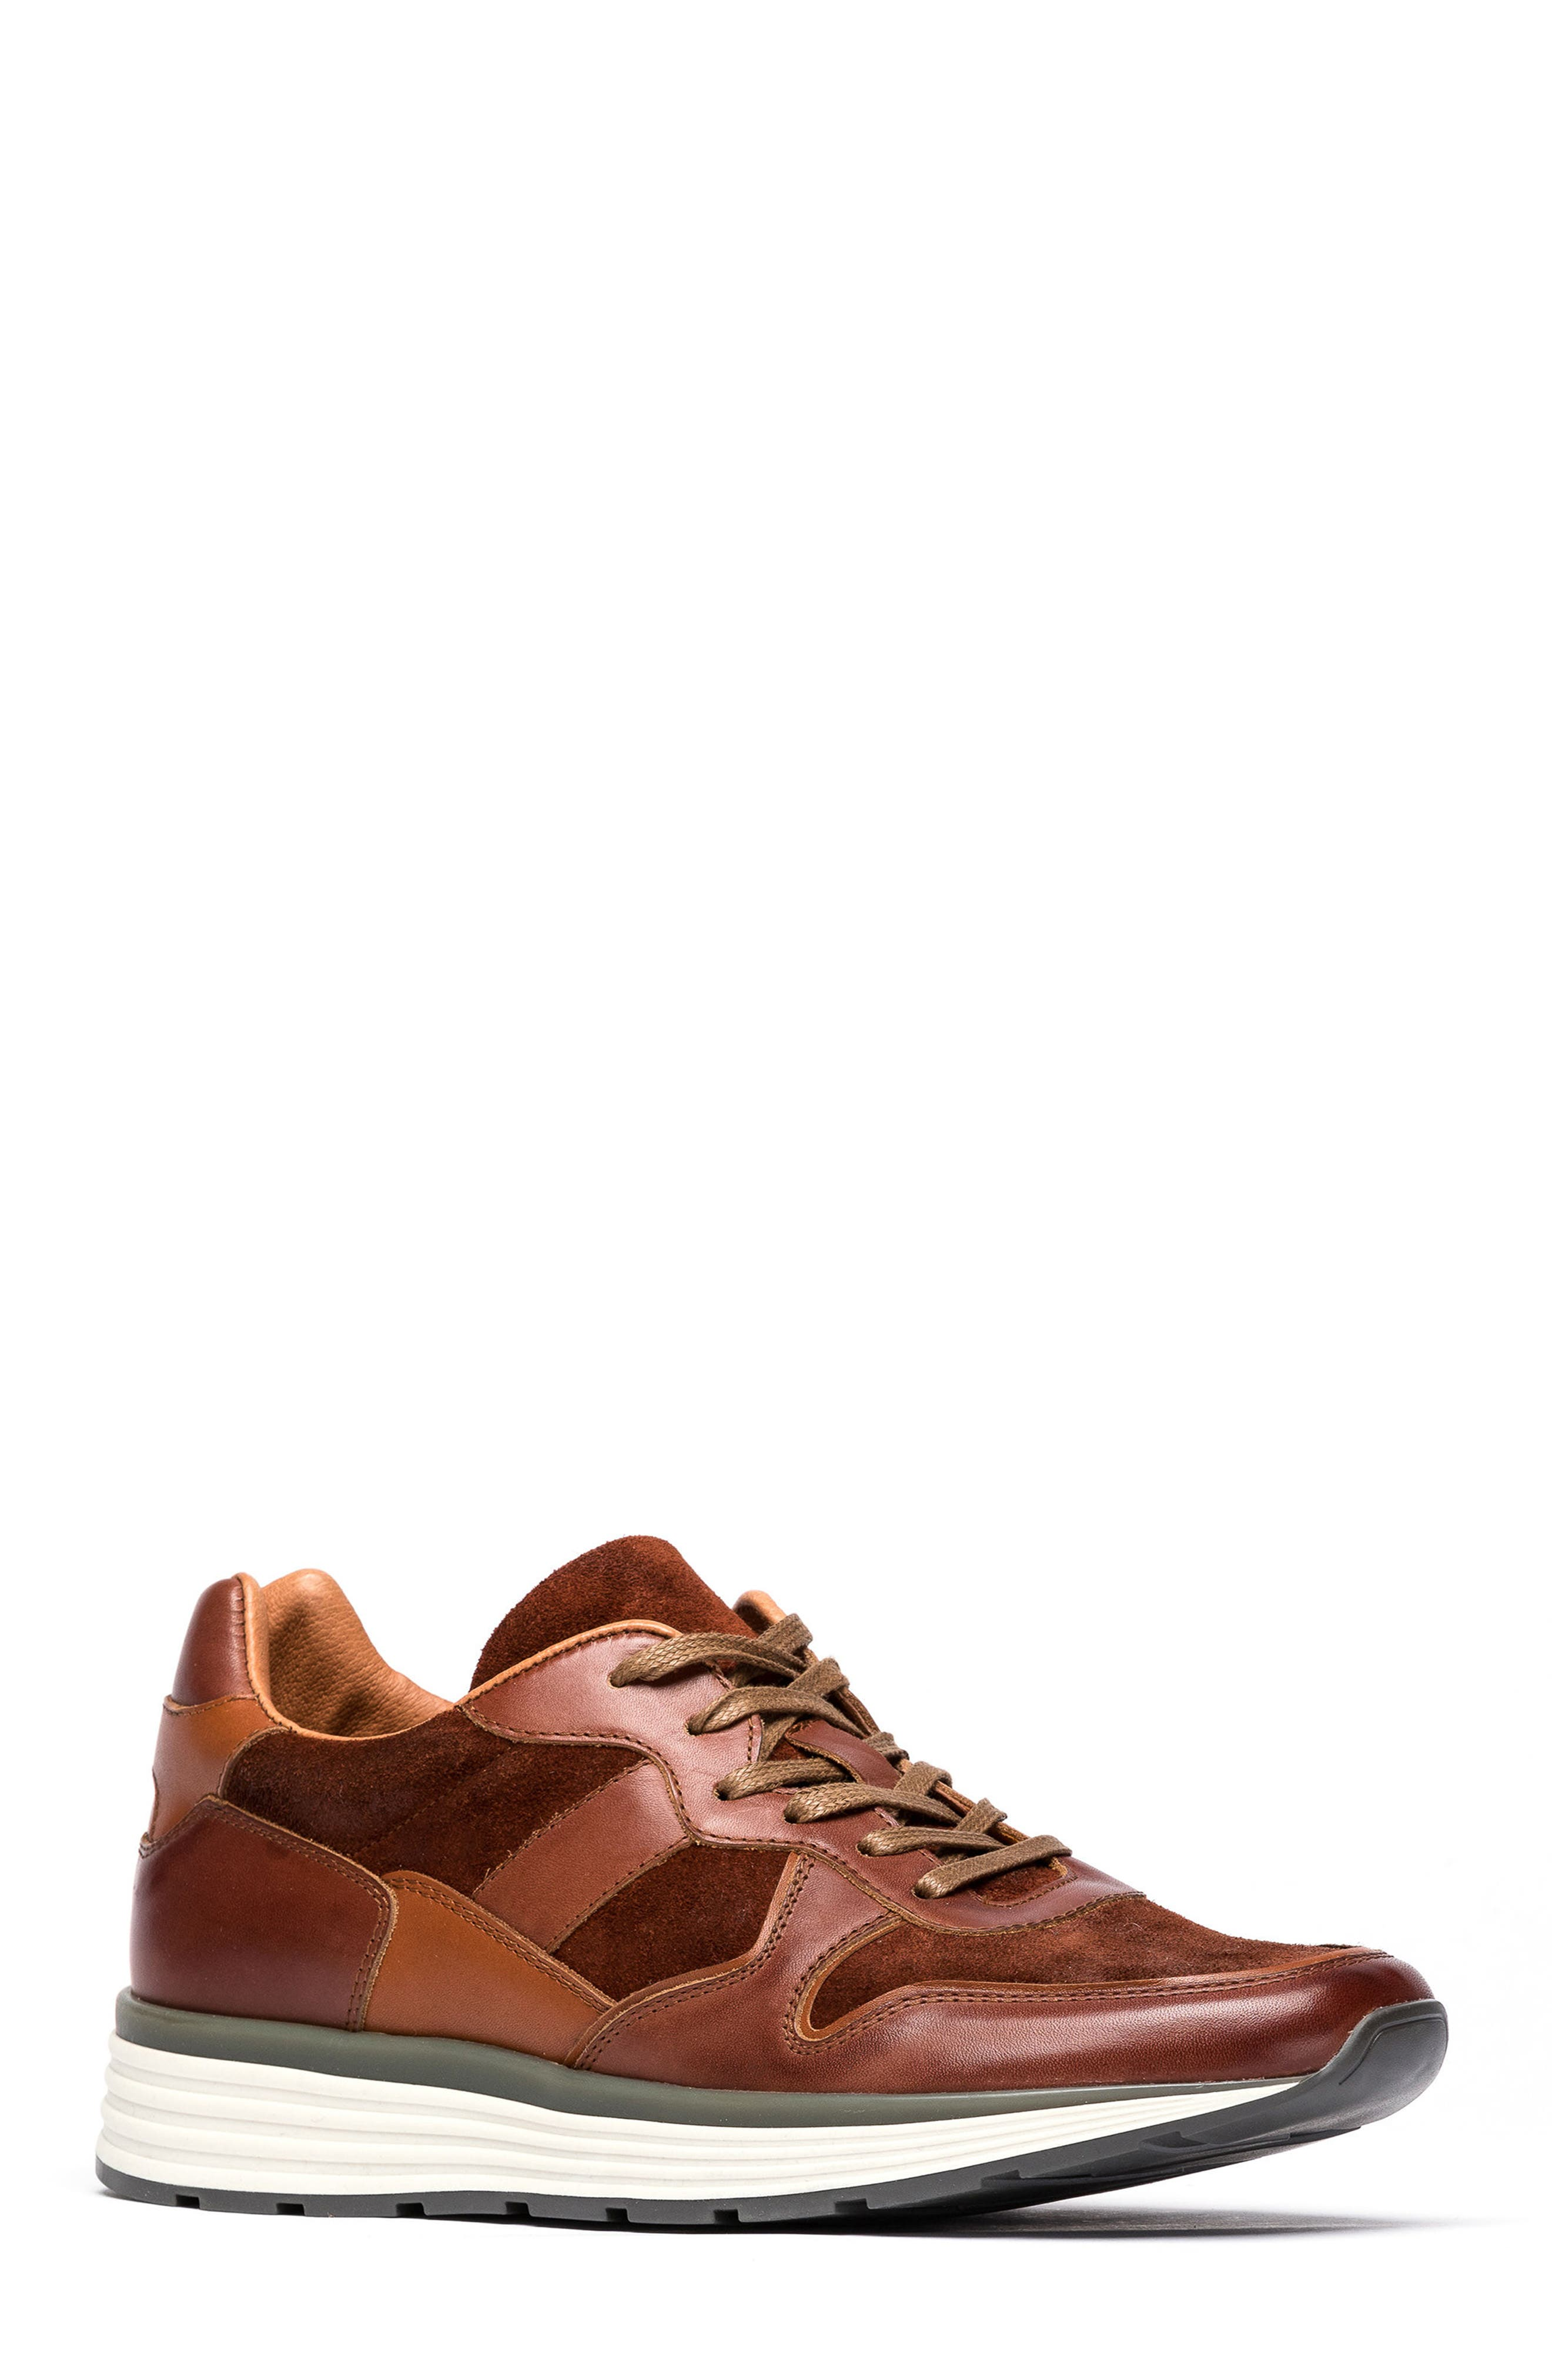 Hickory Sneaker,                             Main thumbnail 1, color,                             Tan Leather